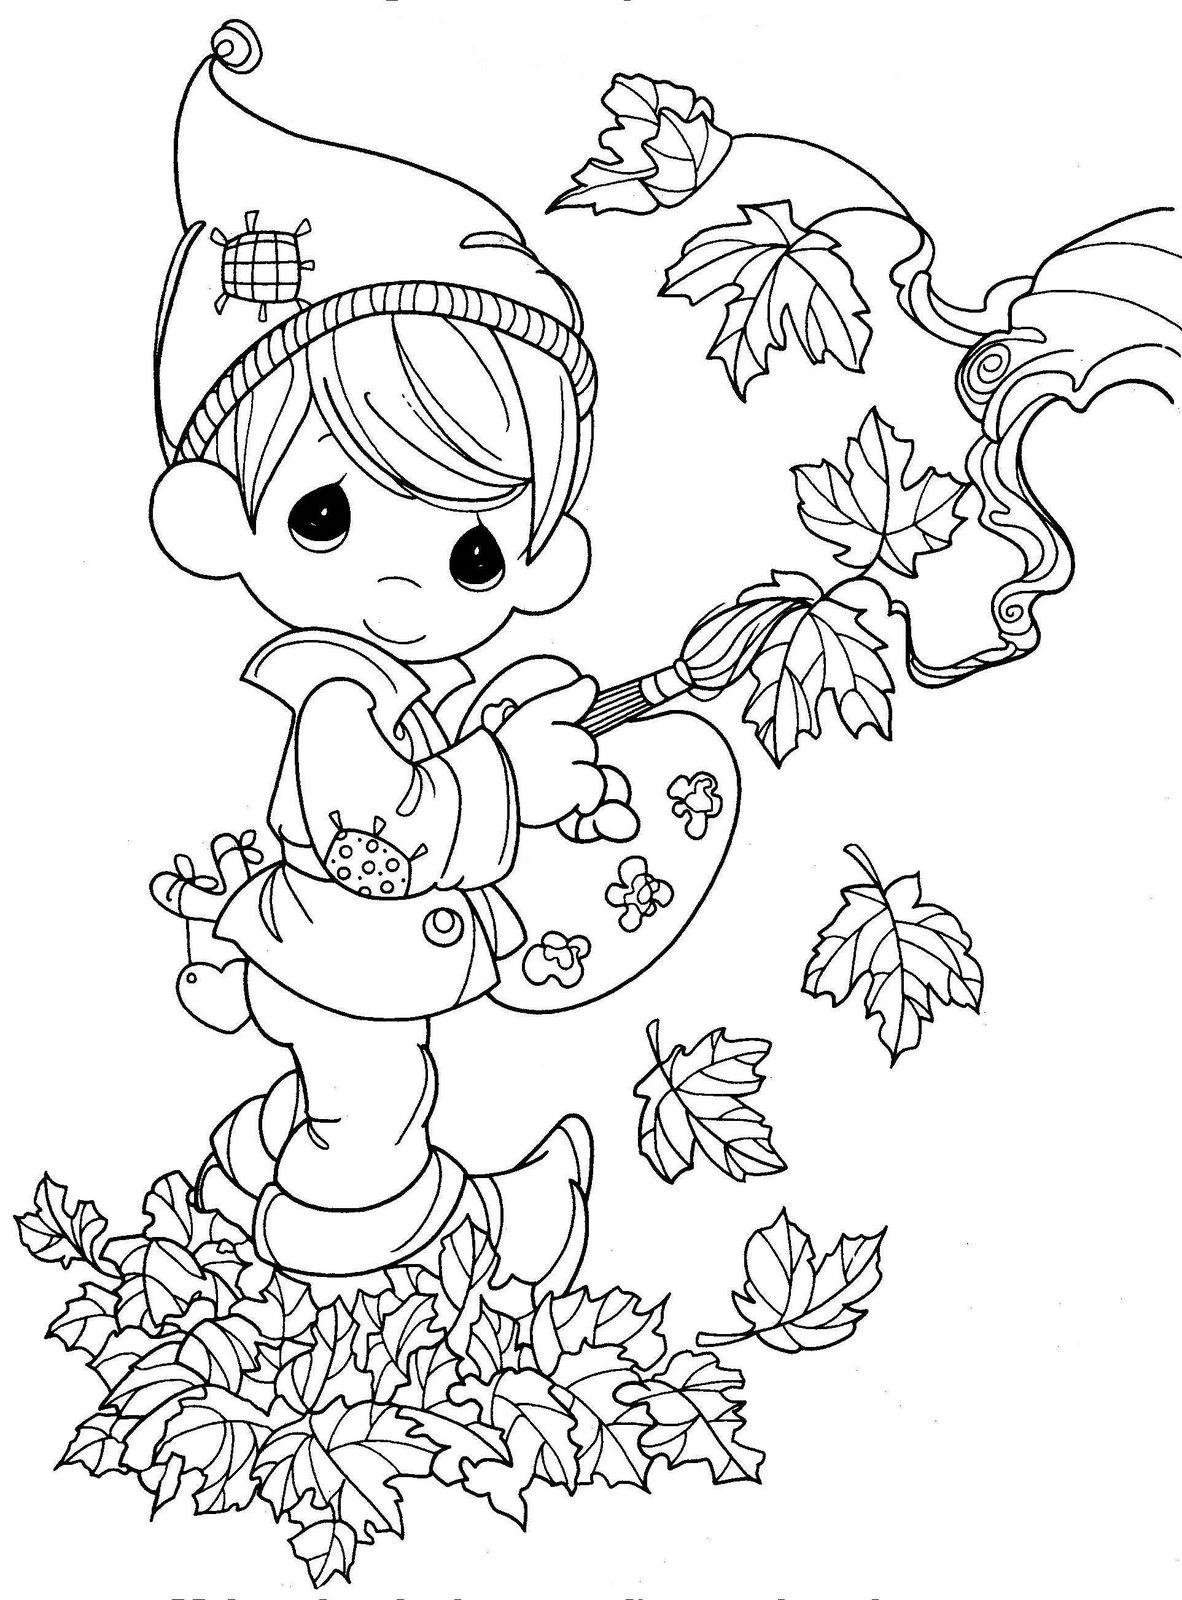 color sheets for fall fall things coloring pages for kids autumn printables fall for color sheets